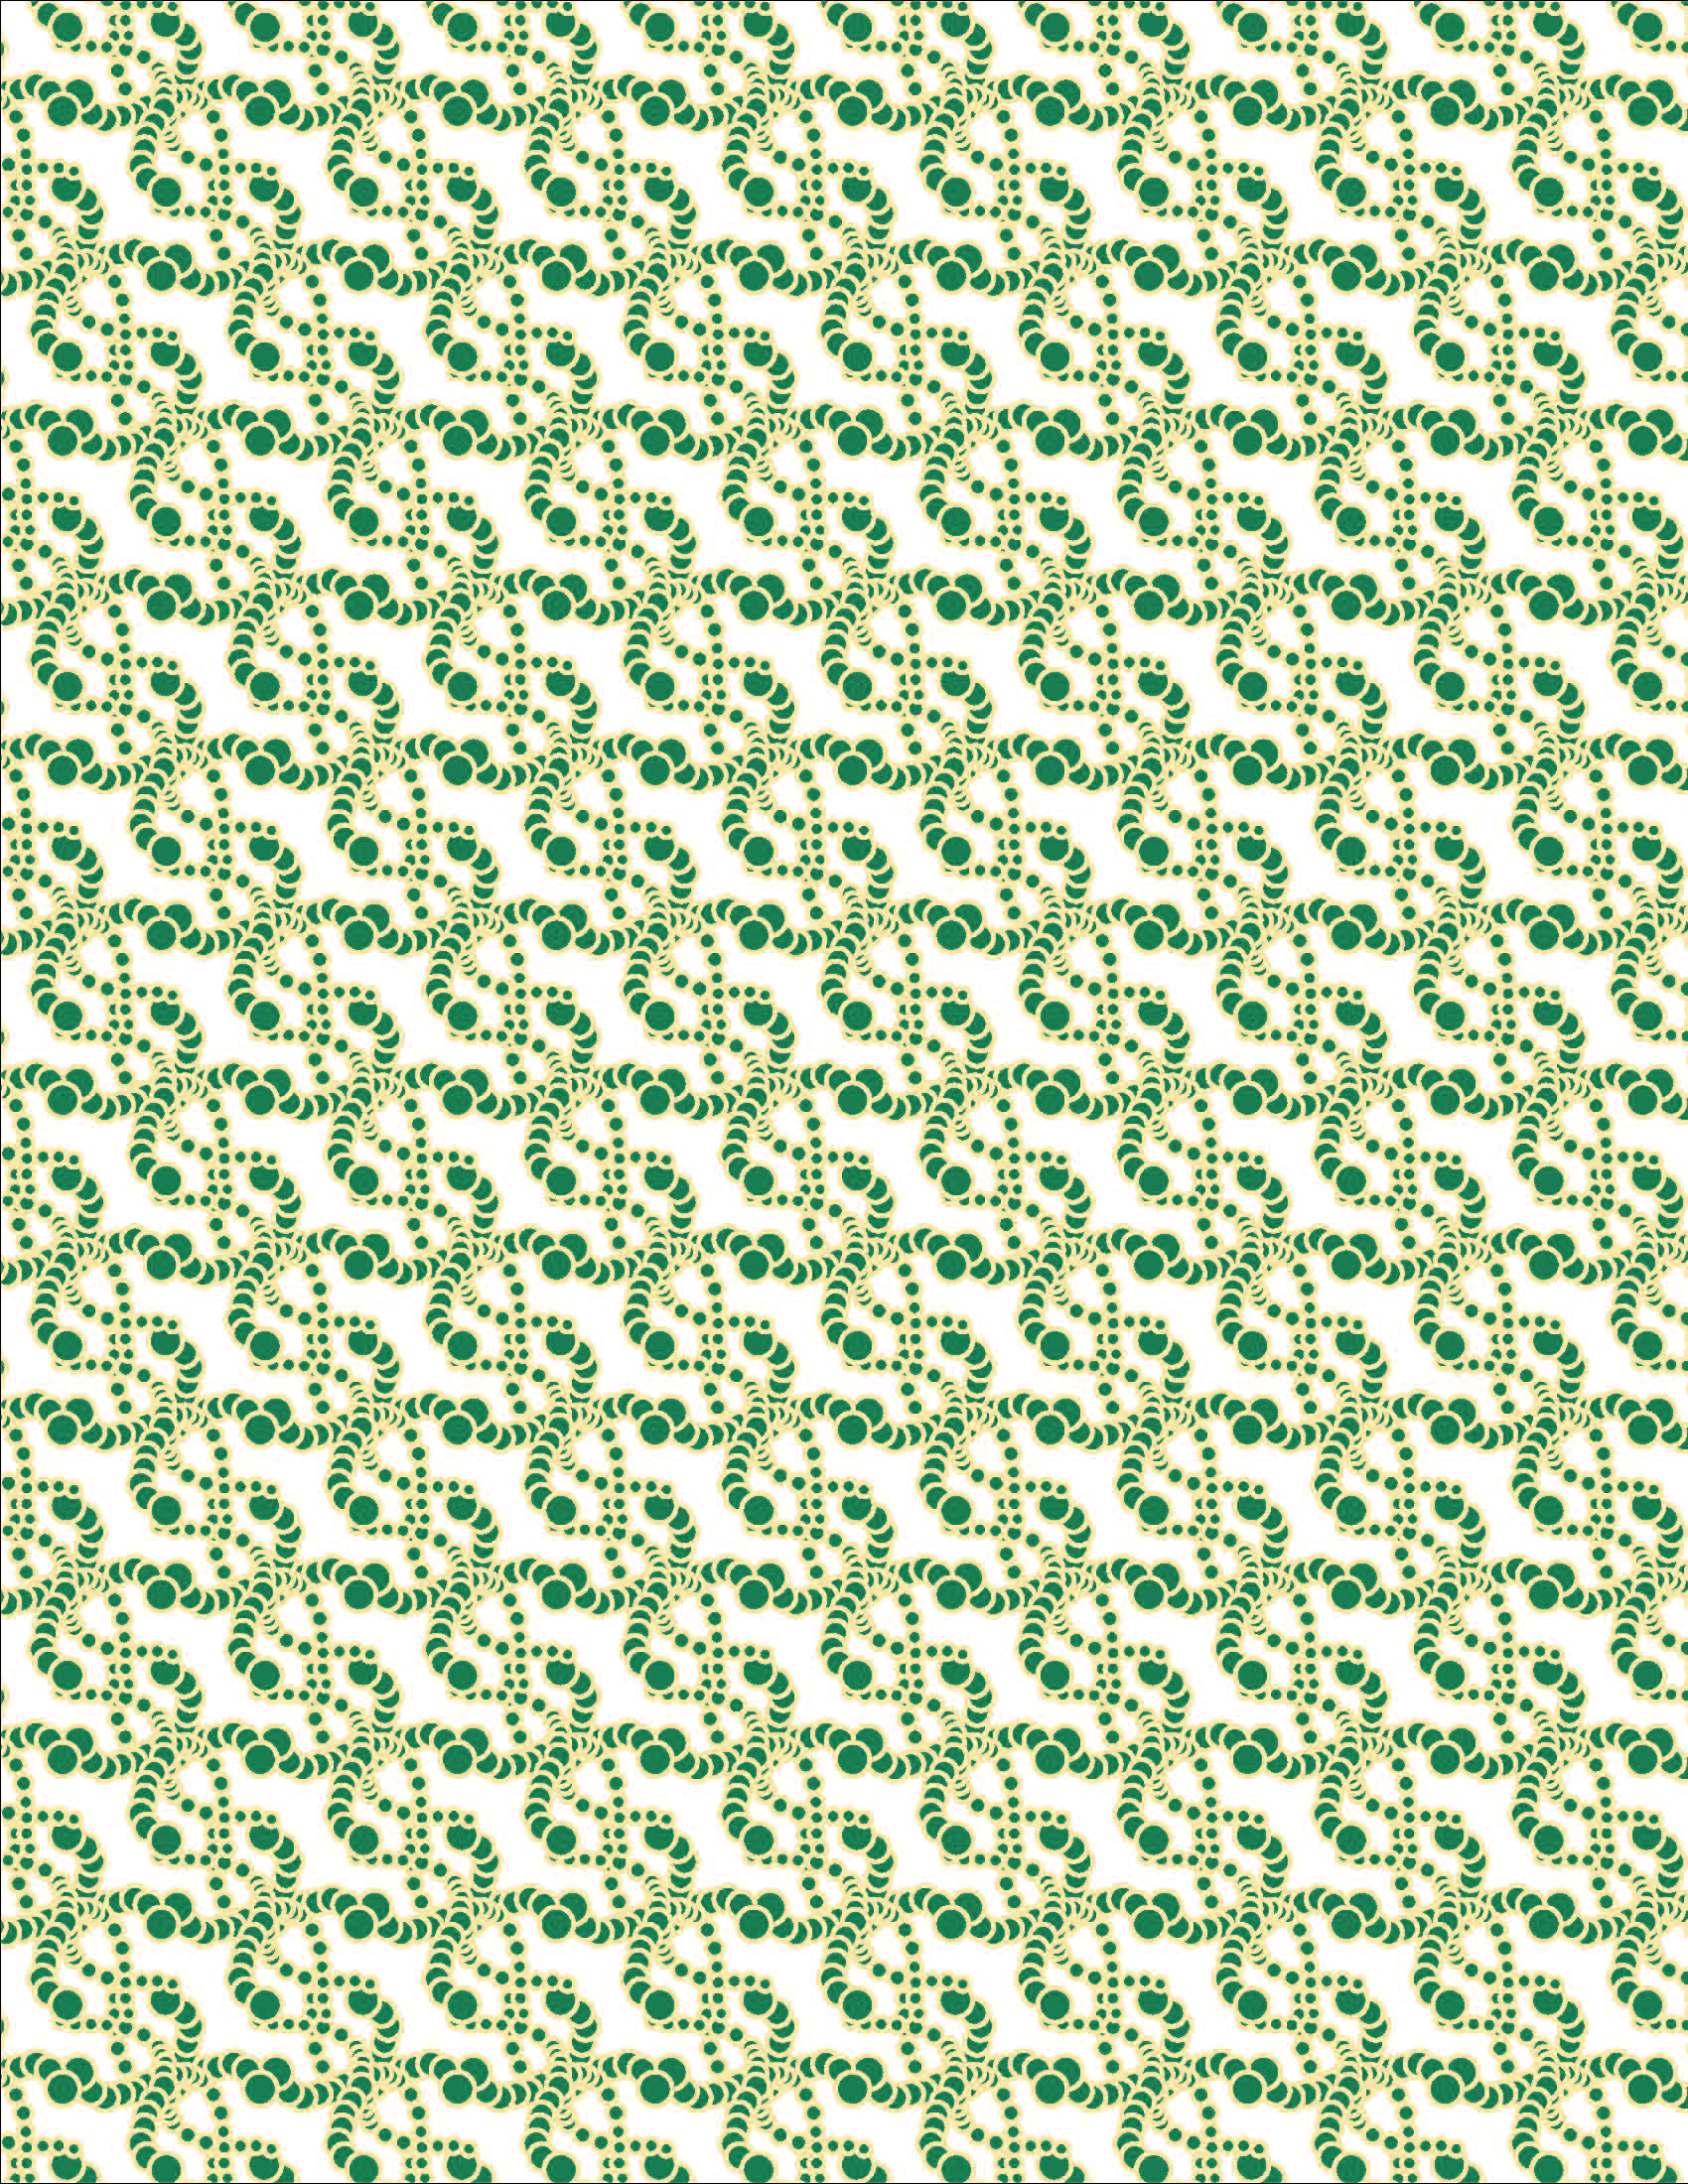 Color_Pattern_Page_2.jpg